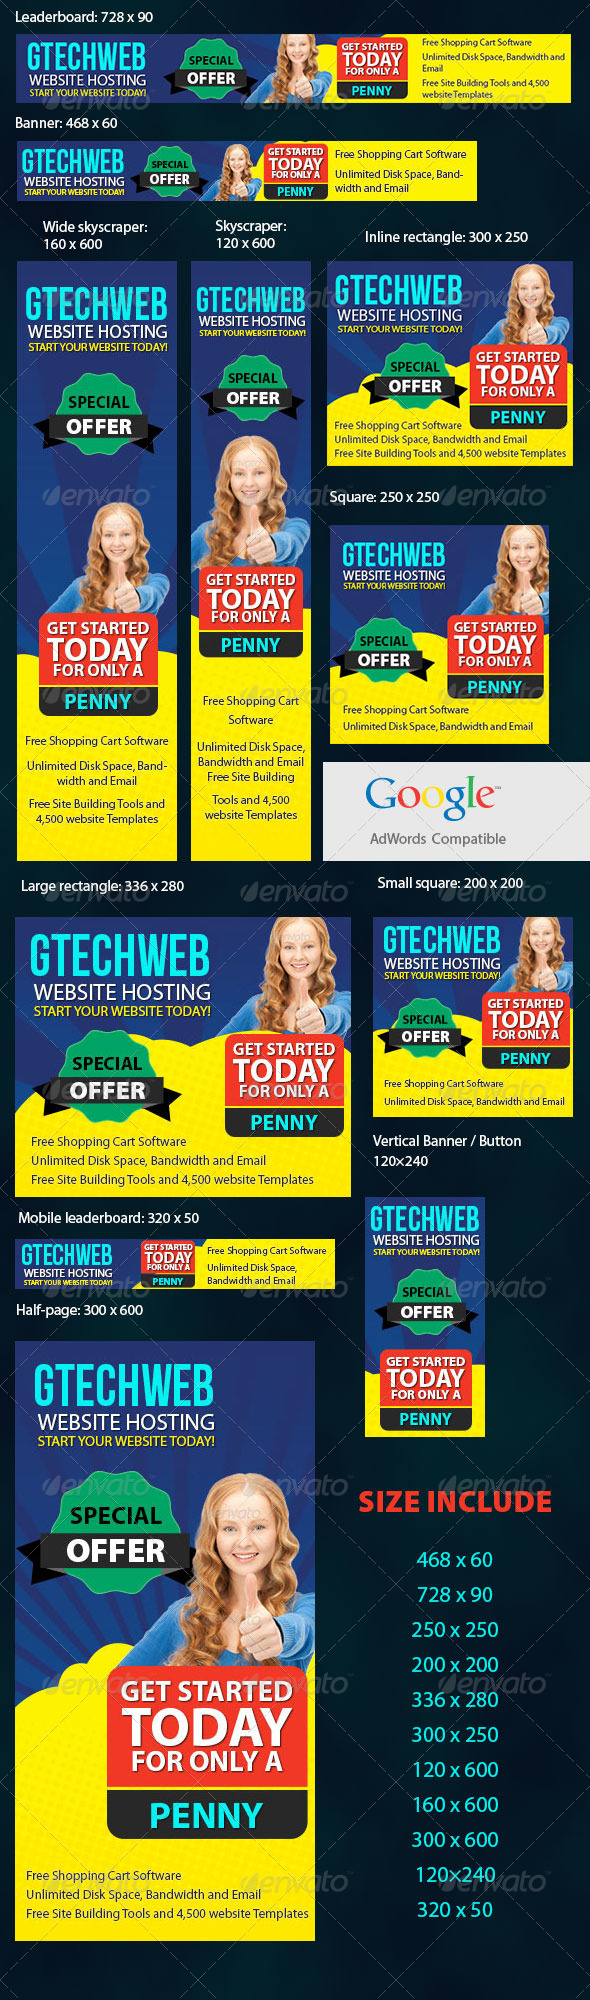 Design google banner ads - Design Google Banner Ads 16